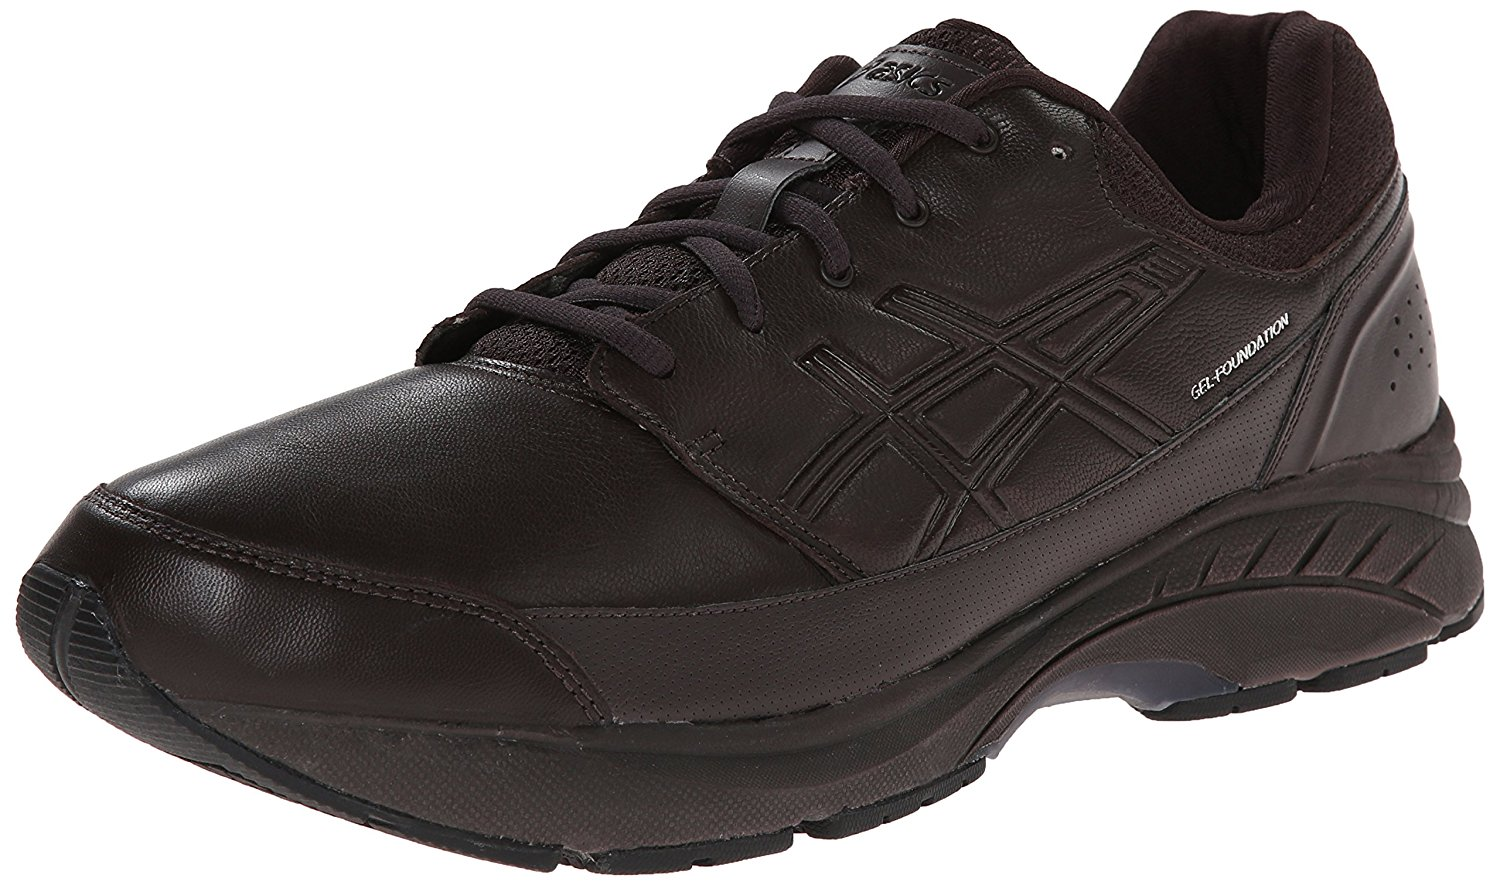 ASICS Men's GEL Foundation Workplace (4E) Walking Shoe